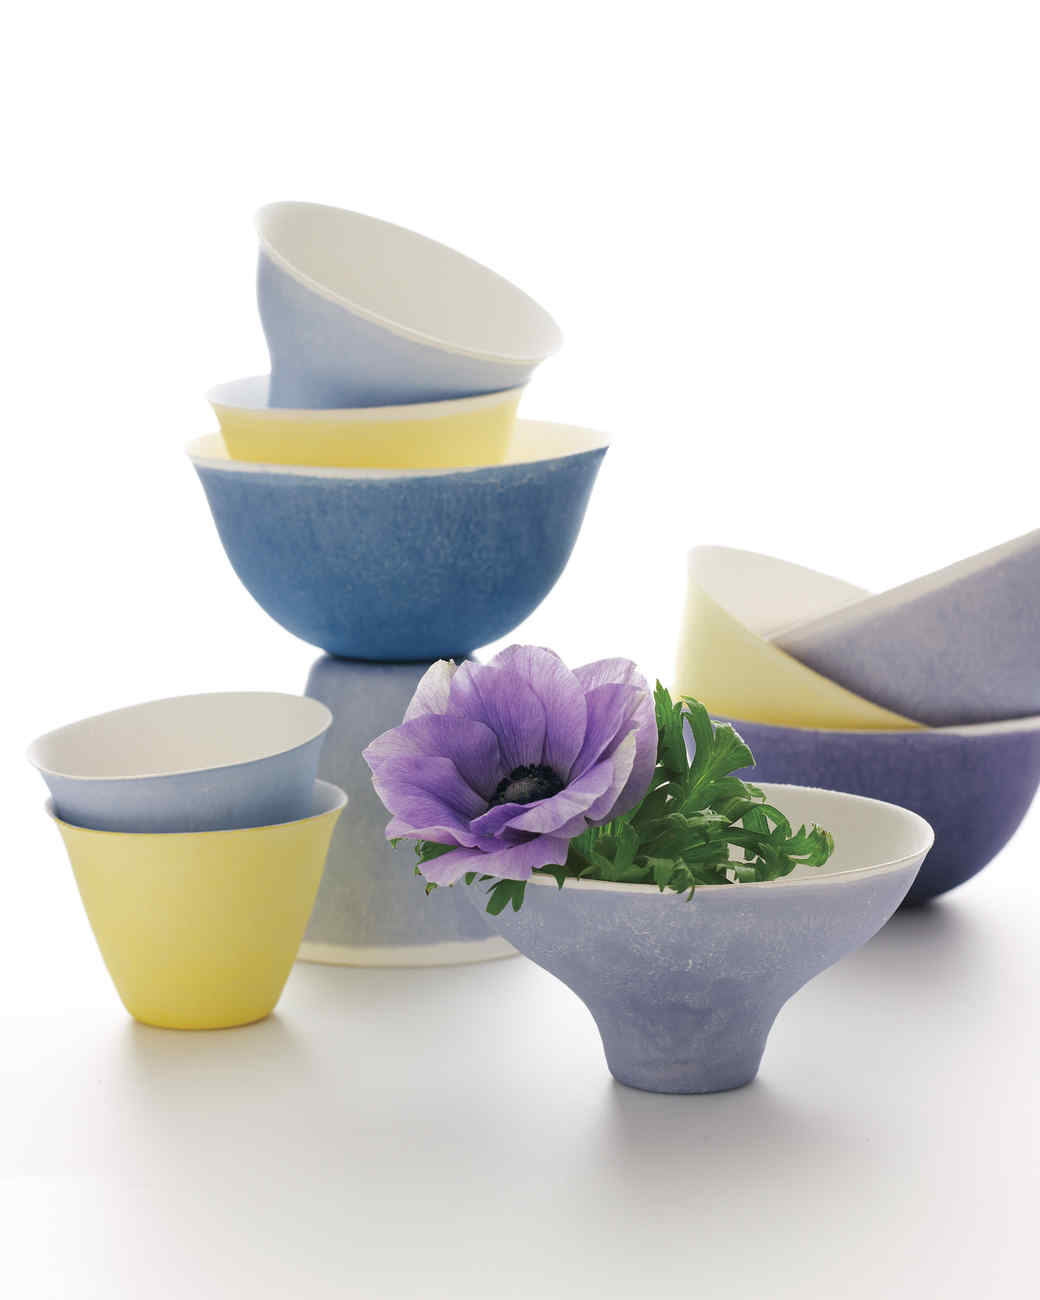 dyed-cups-mld108315.jpg